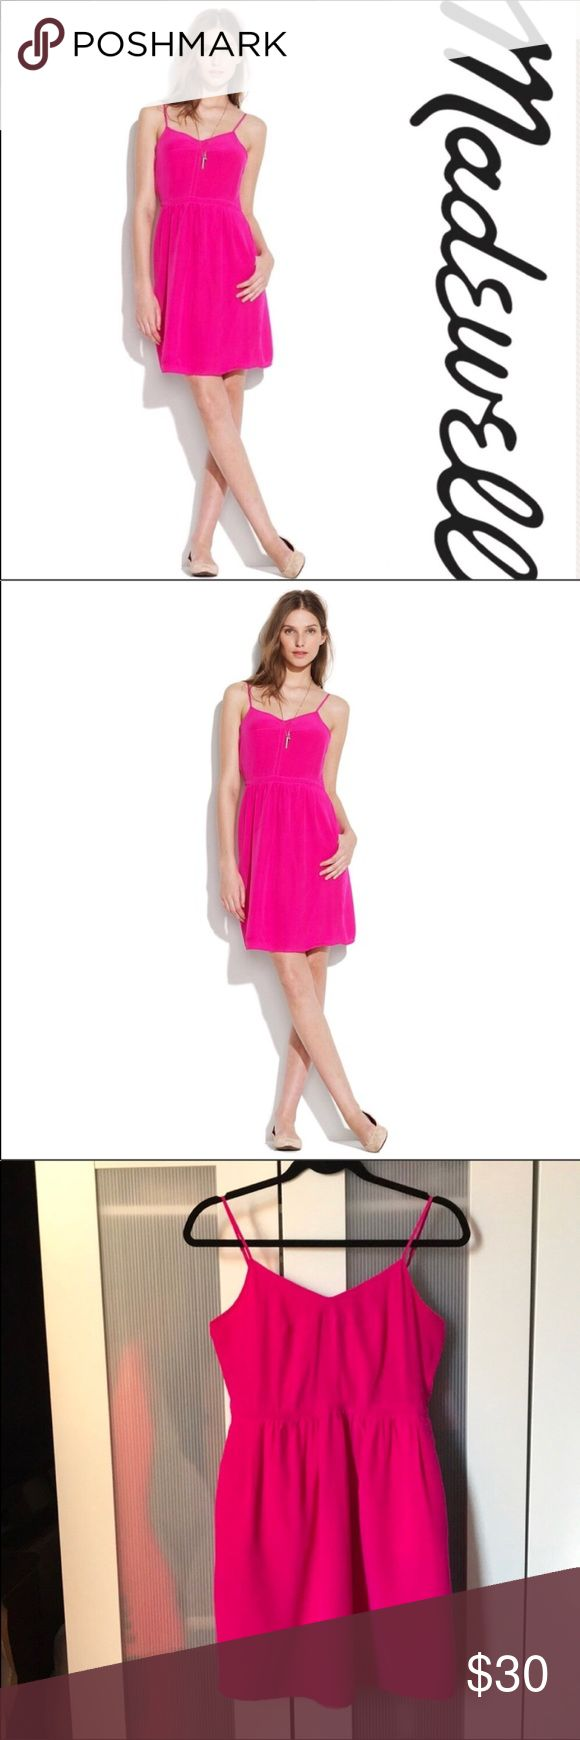 Madewell Broadway & Broome Silk Cami Dress - 4 An instant party favorite, this brushed-silk dress  in hot pink combines form, function and fun.   Fitted at waist.  Has pockets! Silk.  Dry clean.  Import.   Excellent preowned condition.  Offers welcomed!  P13 Madewell Dresses Mini